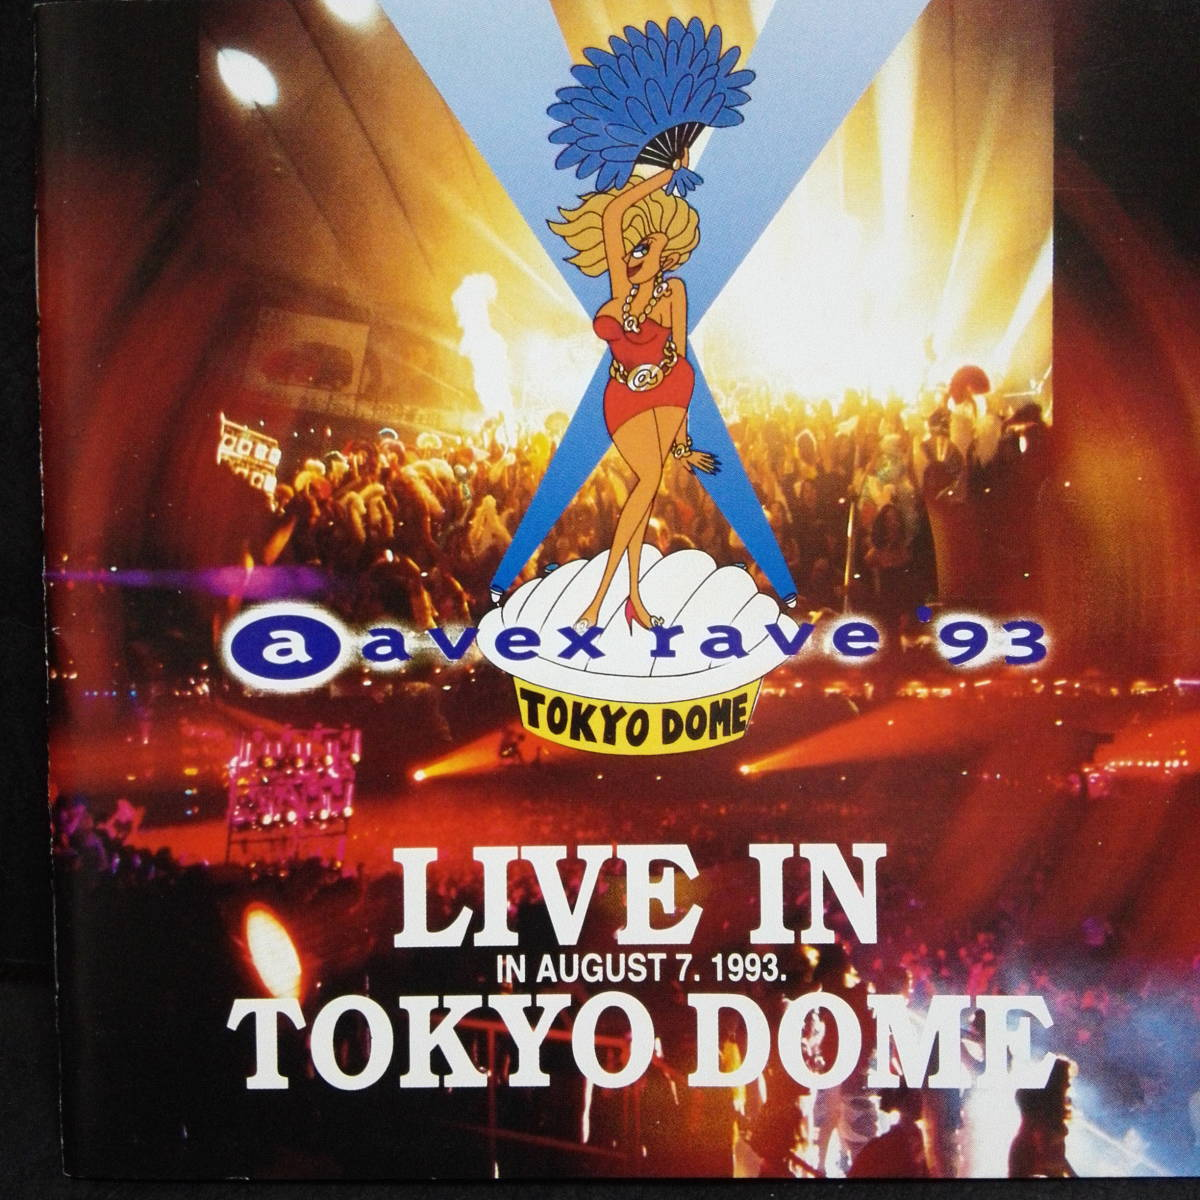 avex rave 93 LIVE in Tokyo Dome 帯付 全16曲LIVE 音源CD ジュリアナテクノ イタロ 90s DISCO JHON ROBINSON trf Maximizor L.A.STYLE_画像4